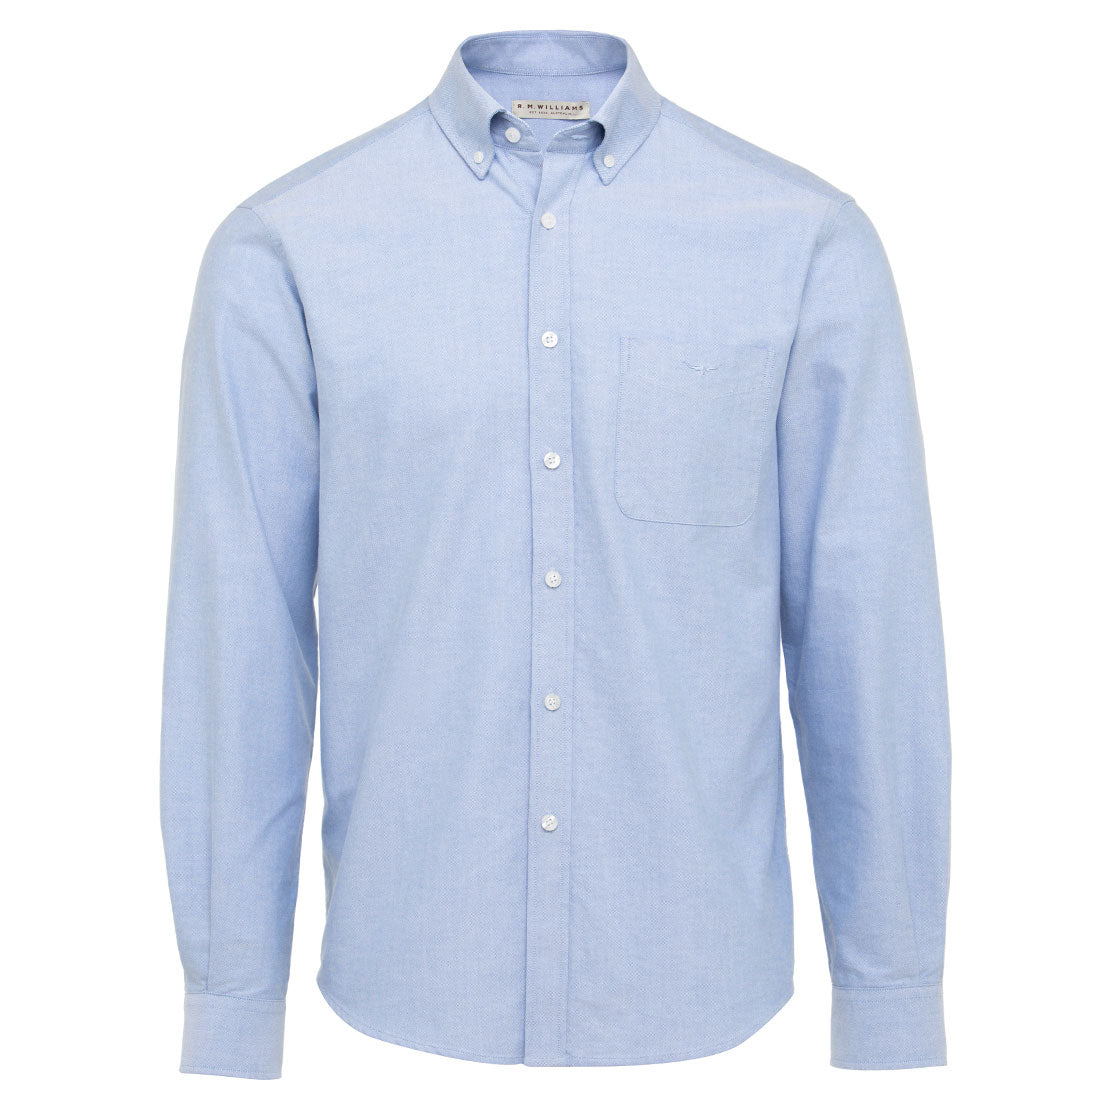 R.M.Williams Collins Shirt Light Blue Button Down Collar Regular Fit